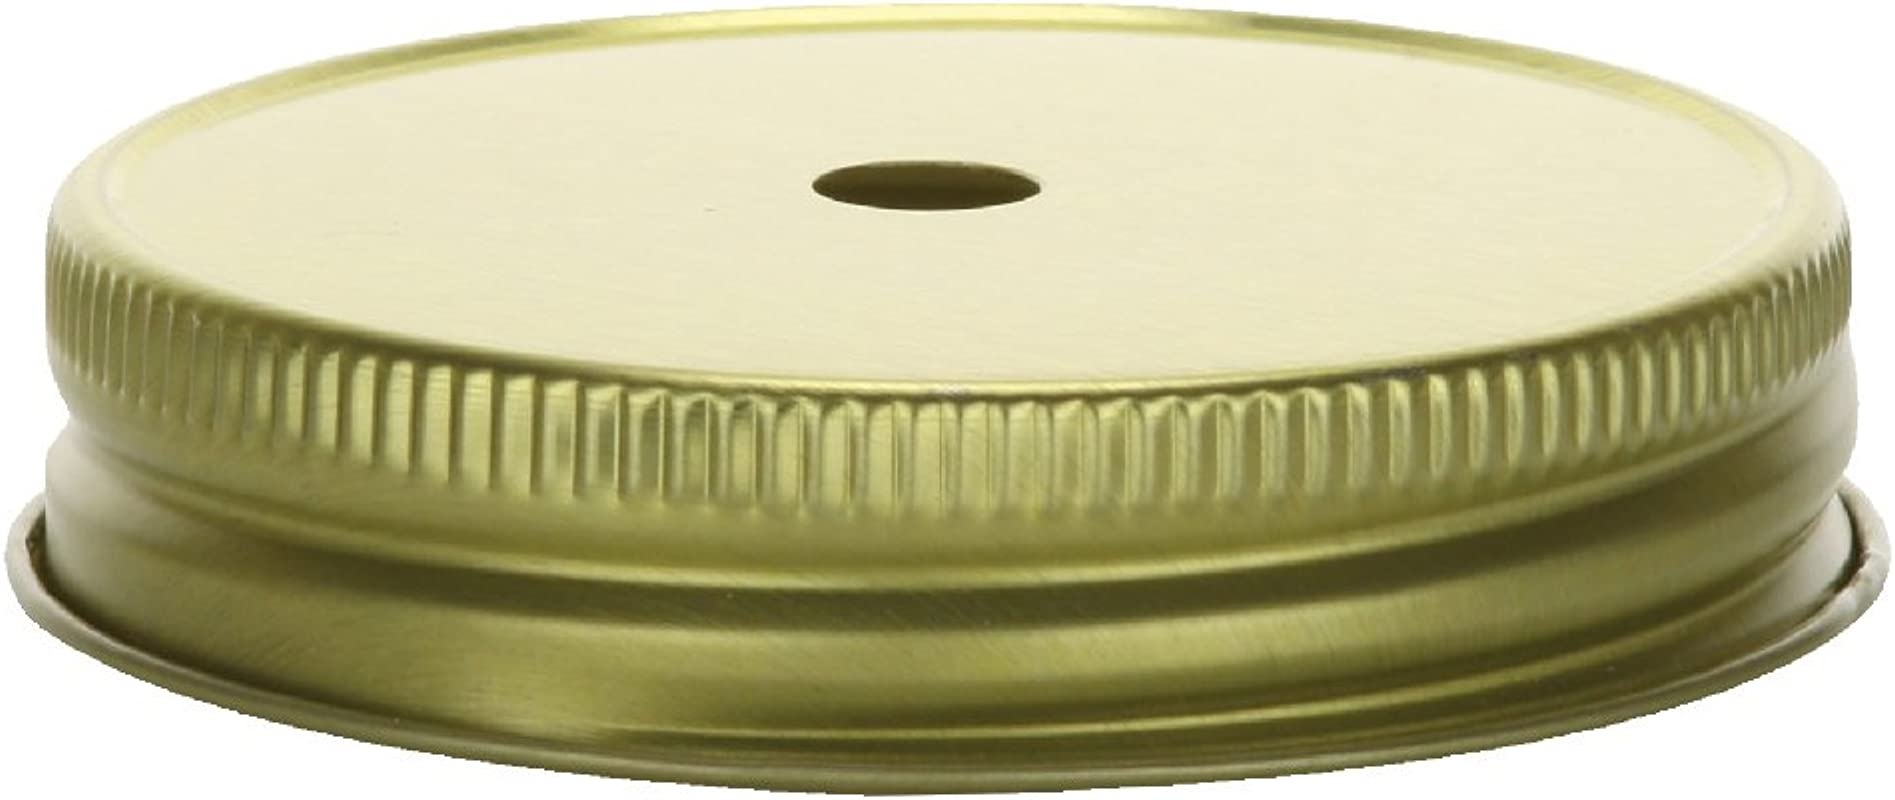 Nakpunar 24 Pcs Gold Mason Jar Lids With Drinking Straw Holes For Regular Mouth Mason Jars Made In USA